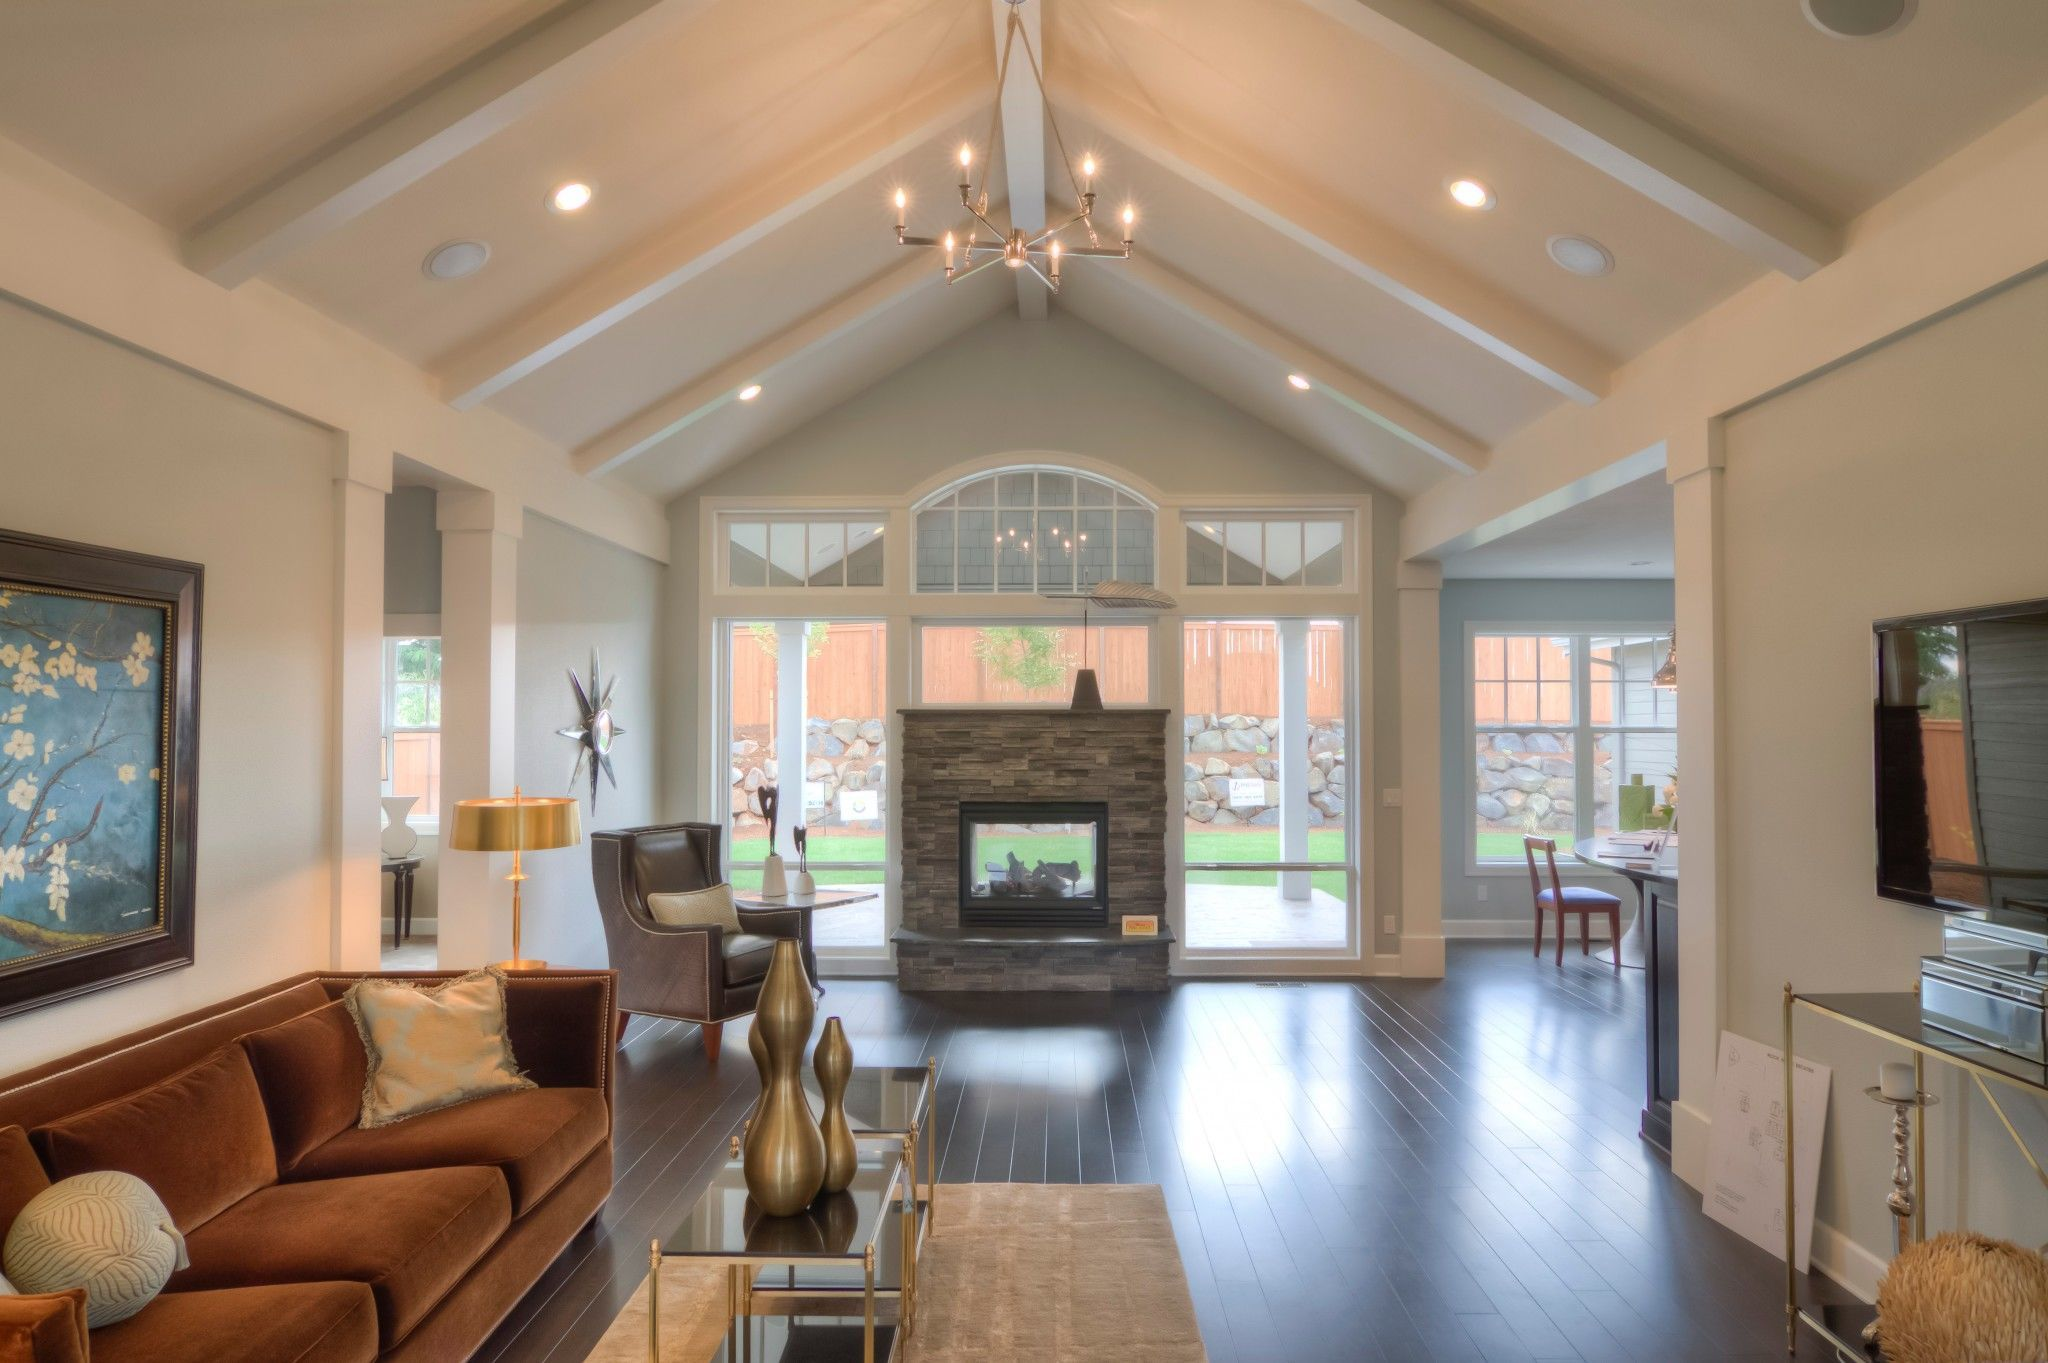 Small Great Room Home Design Ideas Kitchen And Great Room Designs Small House Plans Great Rooms House Plans